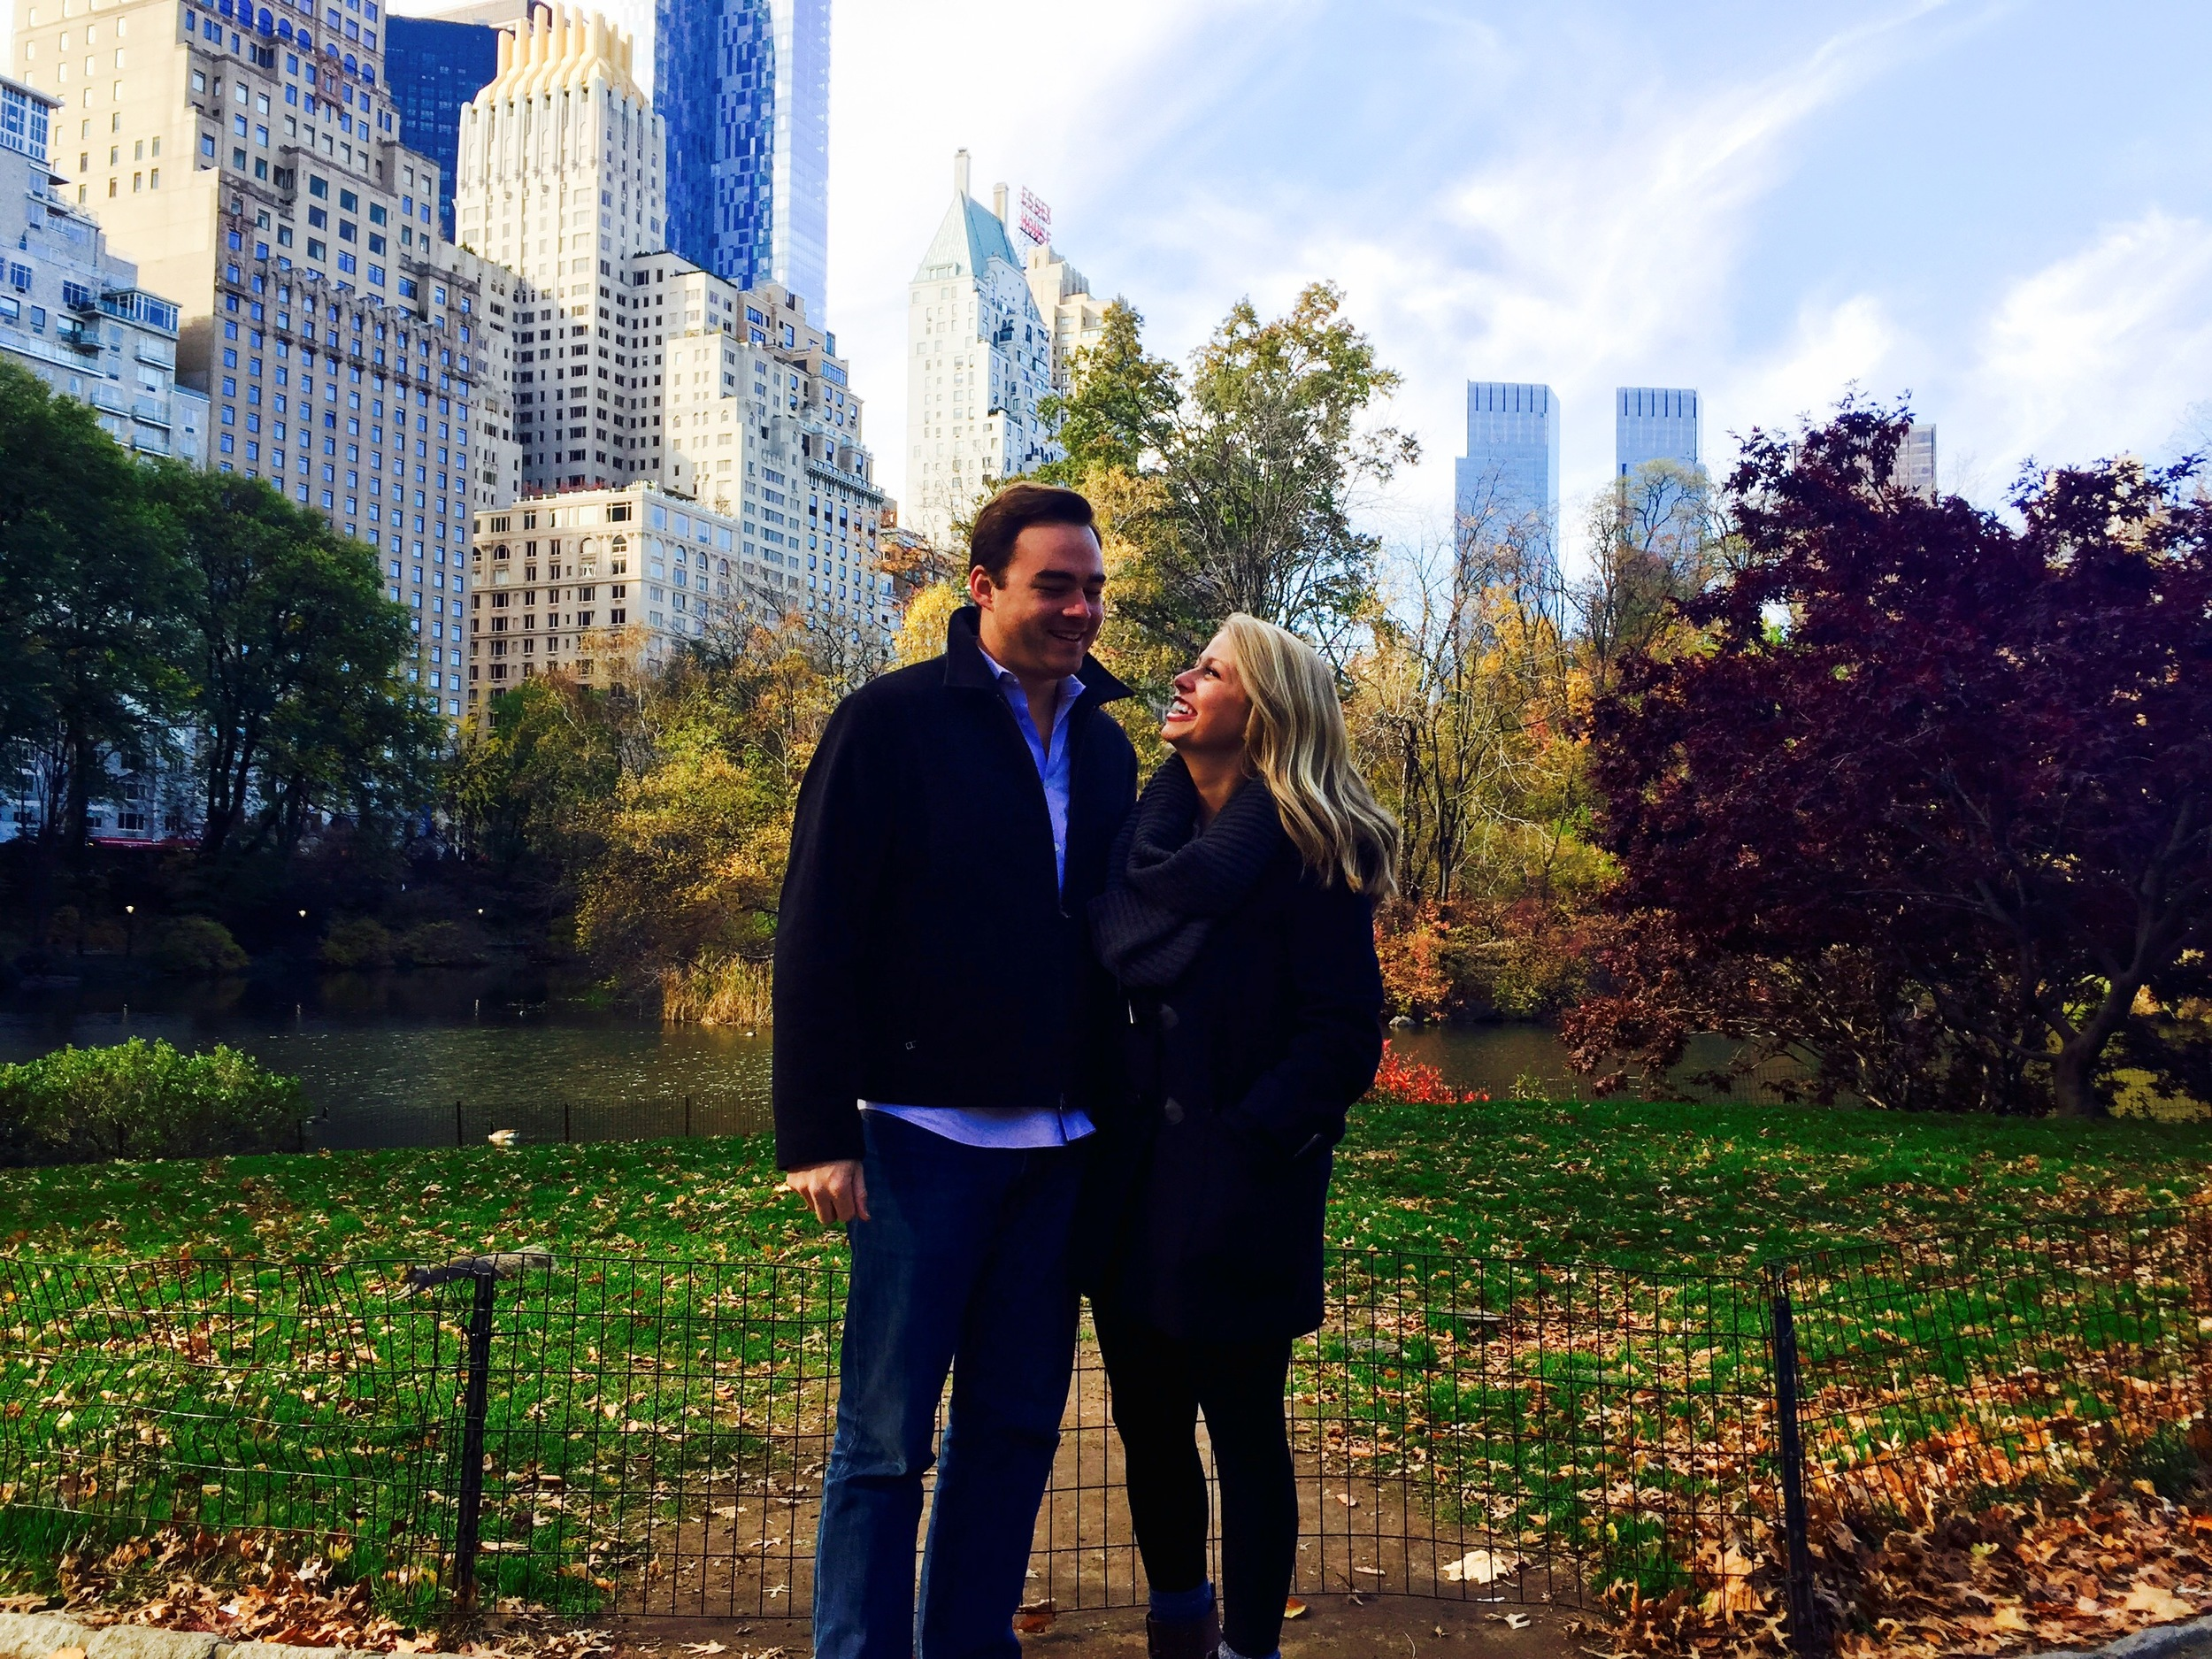 Central Park this past November